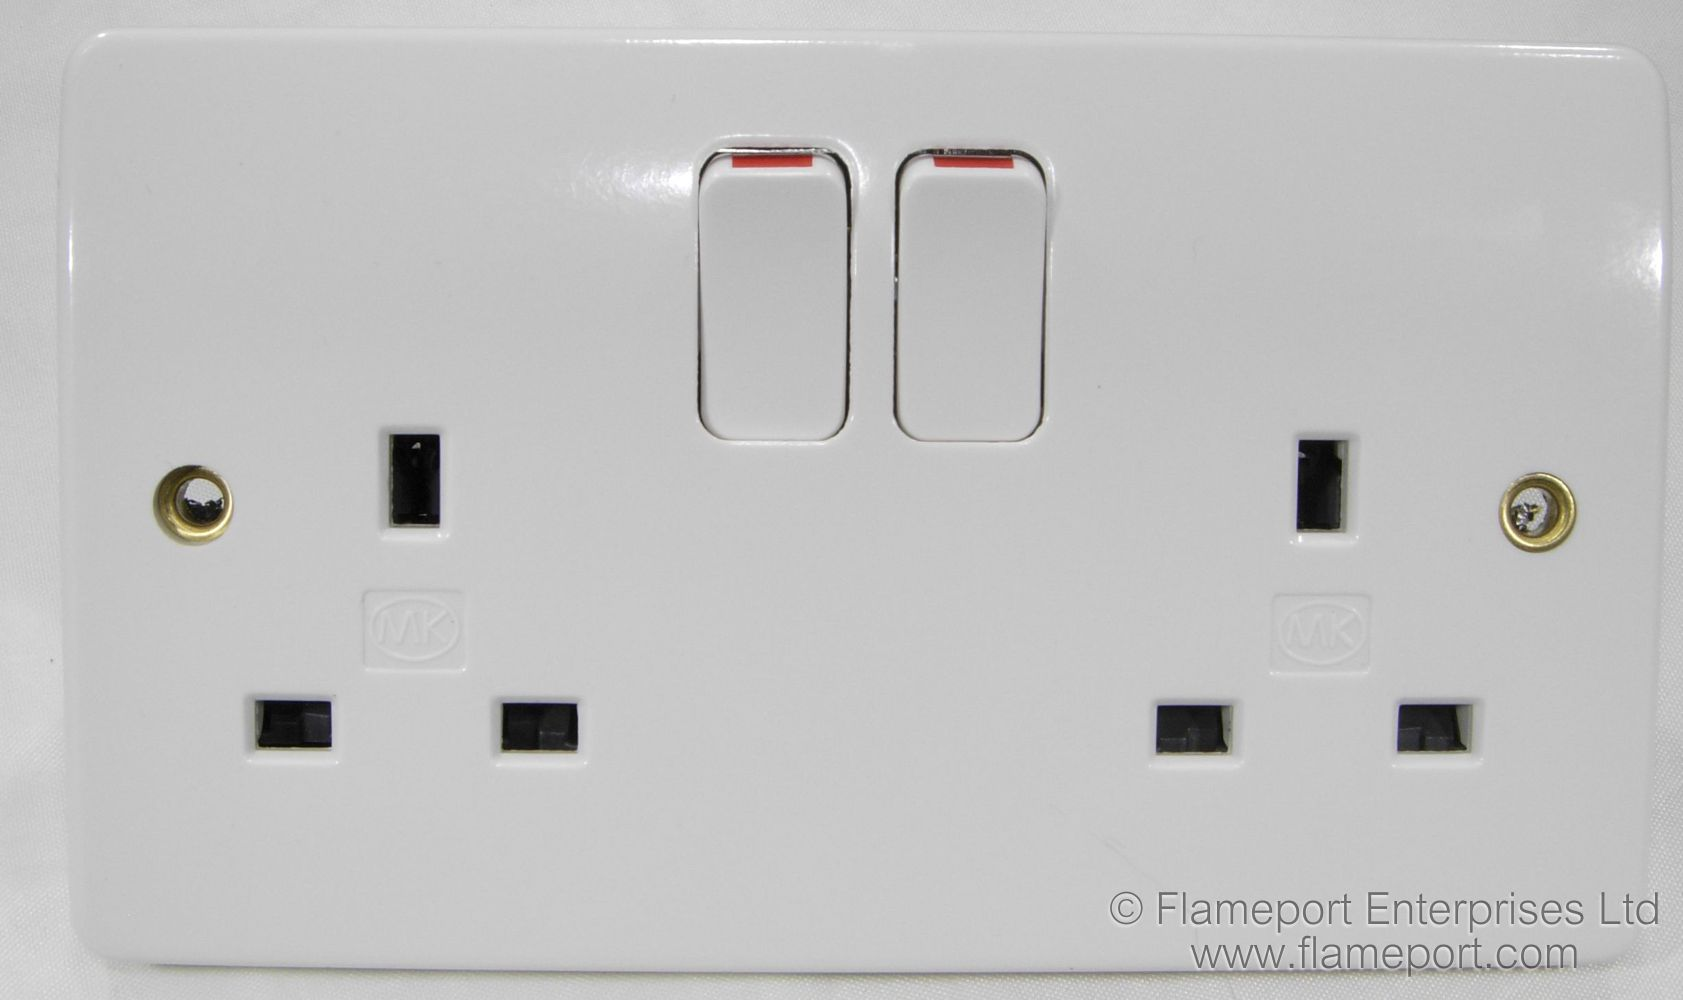 MK BS1363 Double Socket Outlet